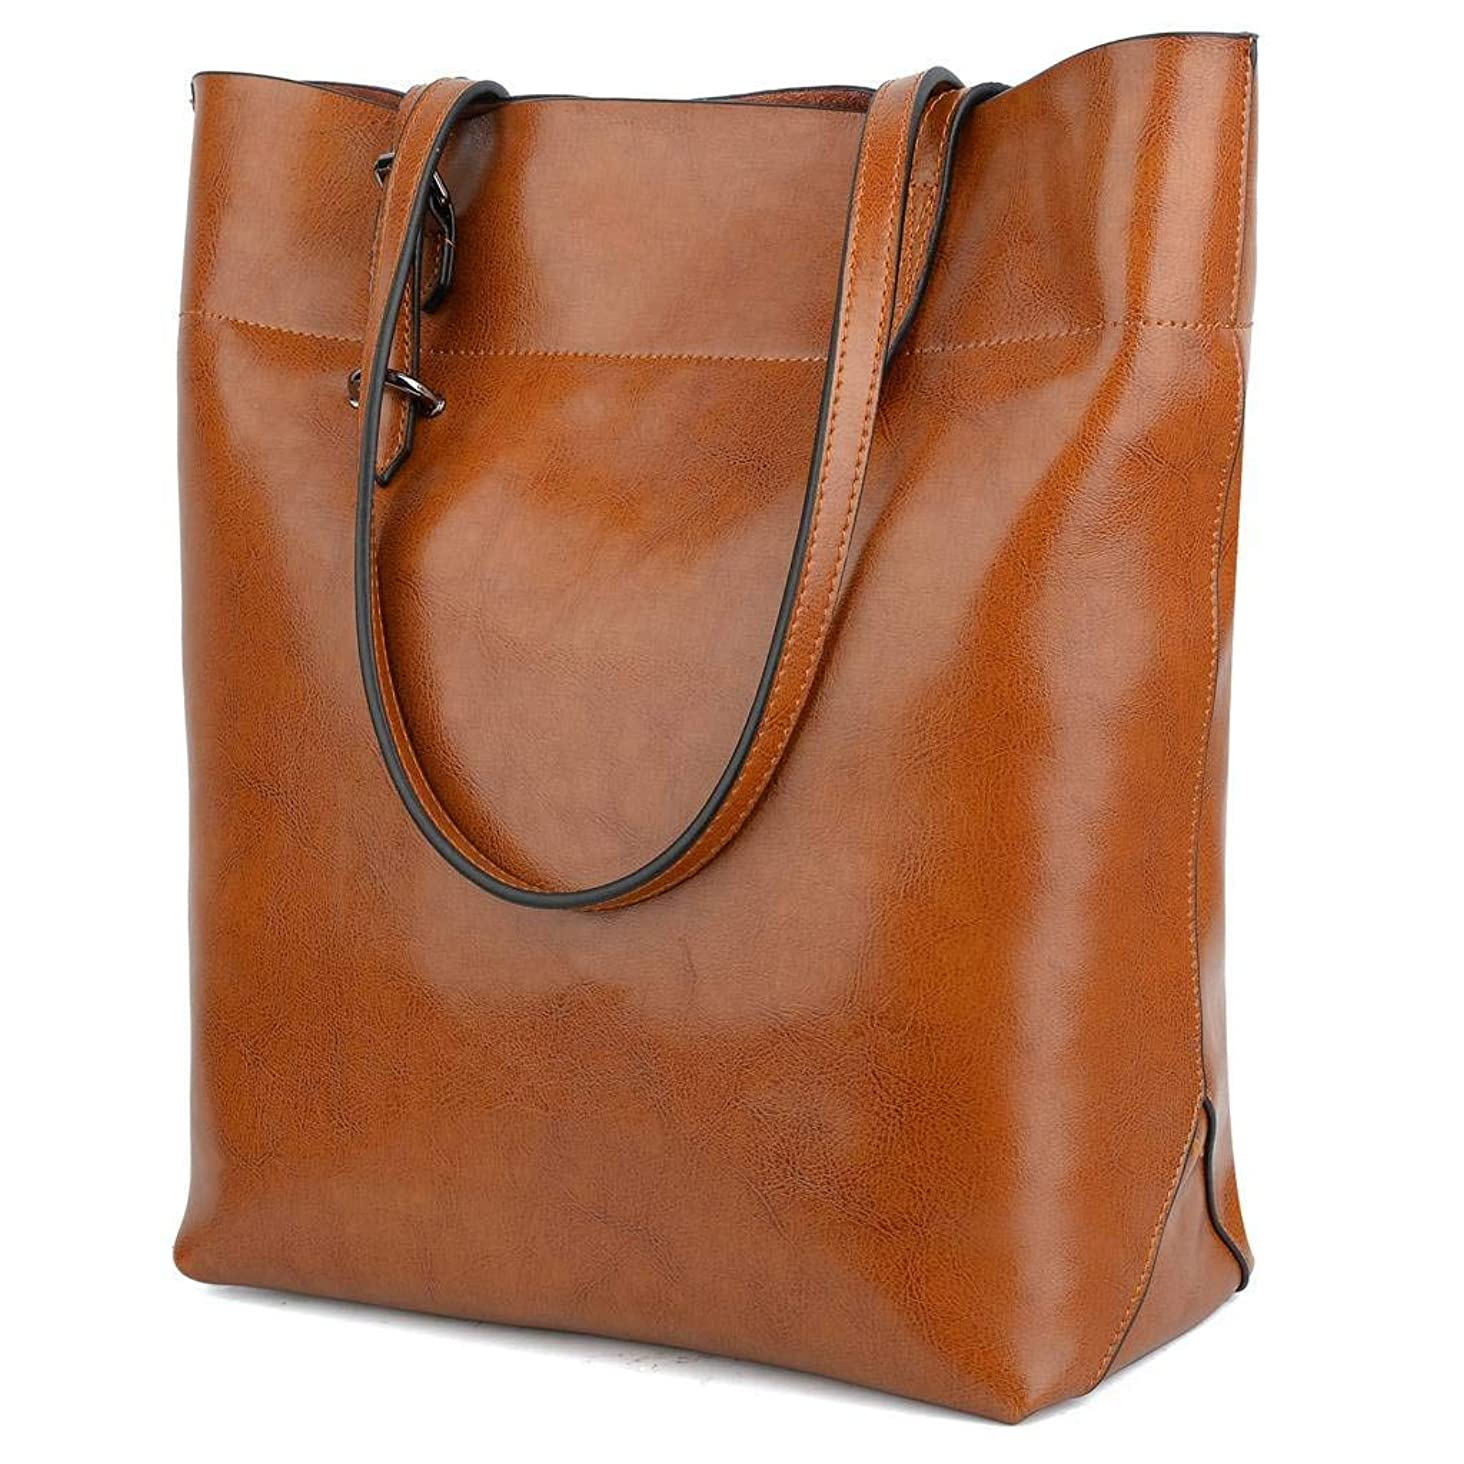 YALUXE Leather Tote Women's Soft Work Shoulder Bag (Upgraded 2.0)